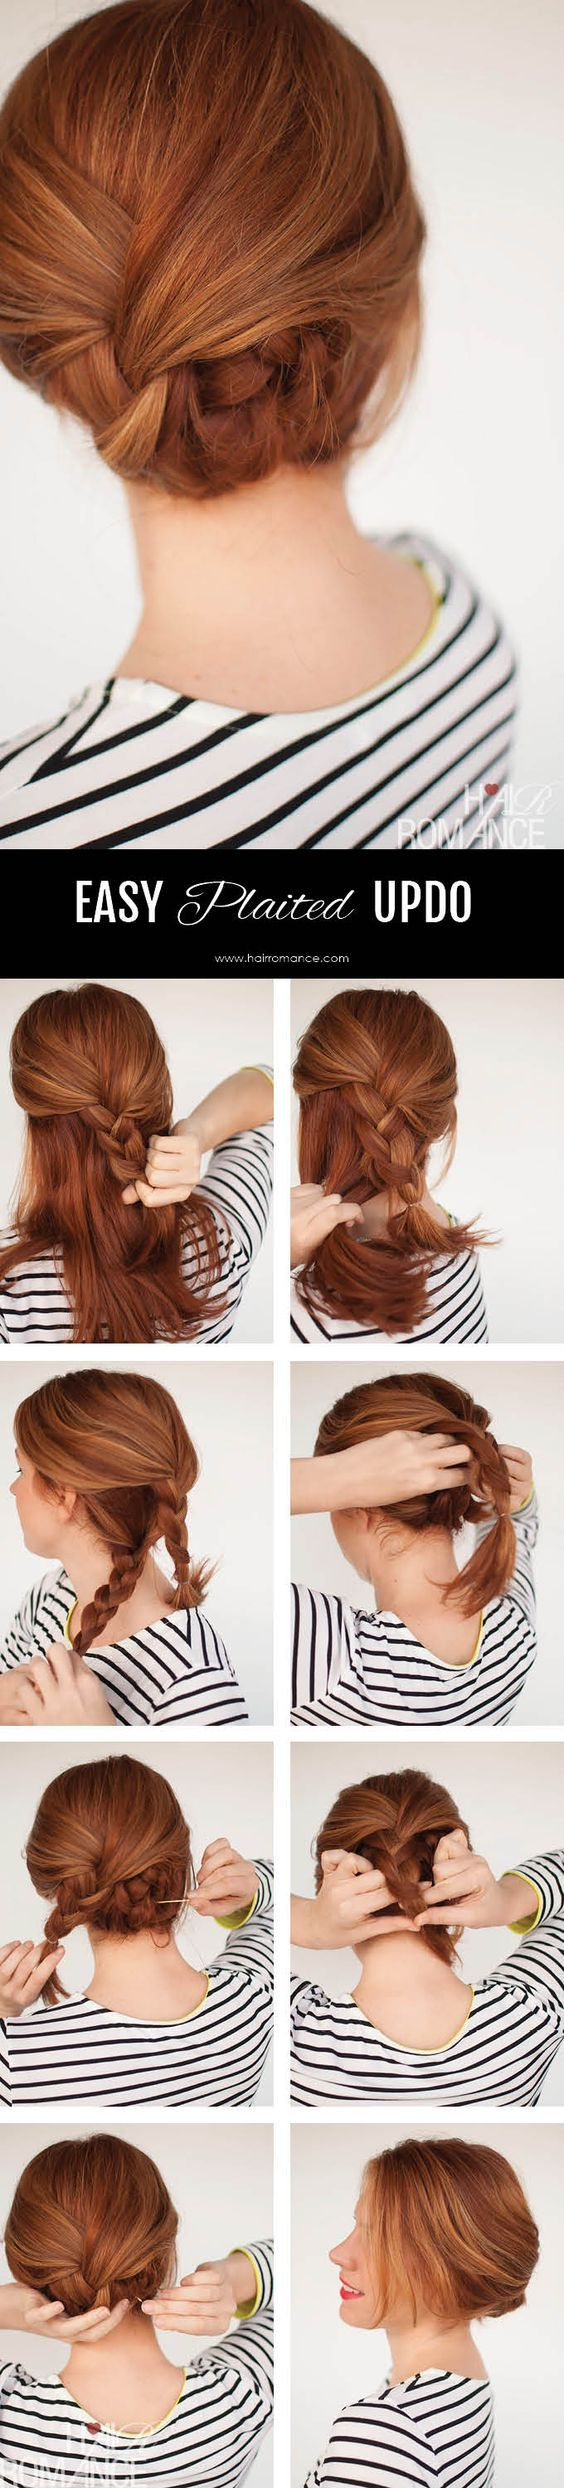 5 Minute Hairstyles For Girls Best 20 Easy Updo Hairstyles Ideas On Pinterest Easy Updo Easy